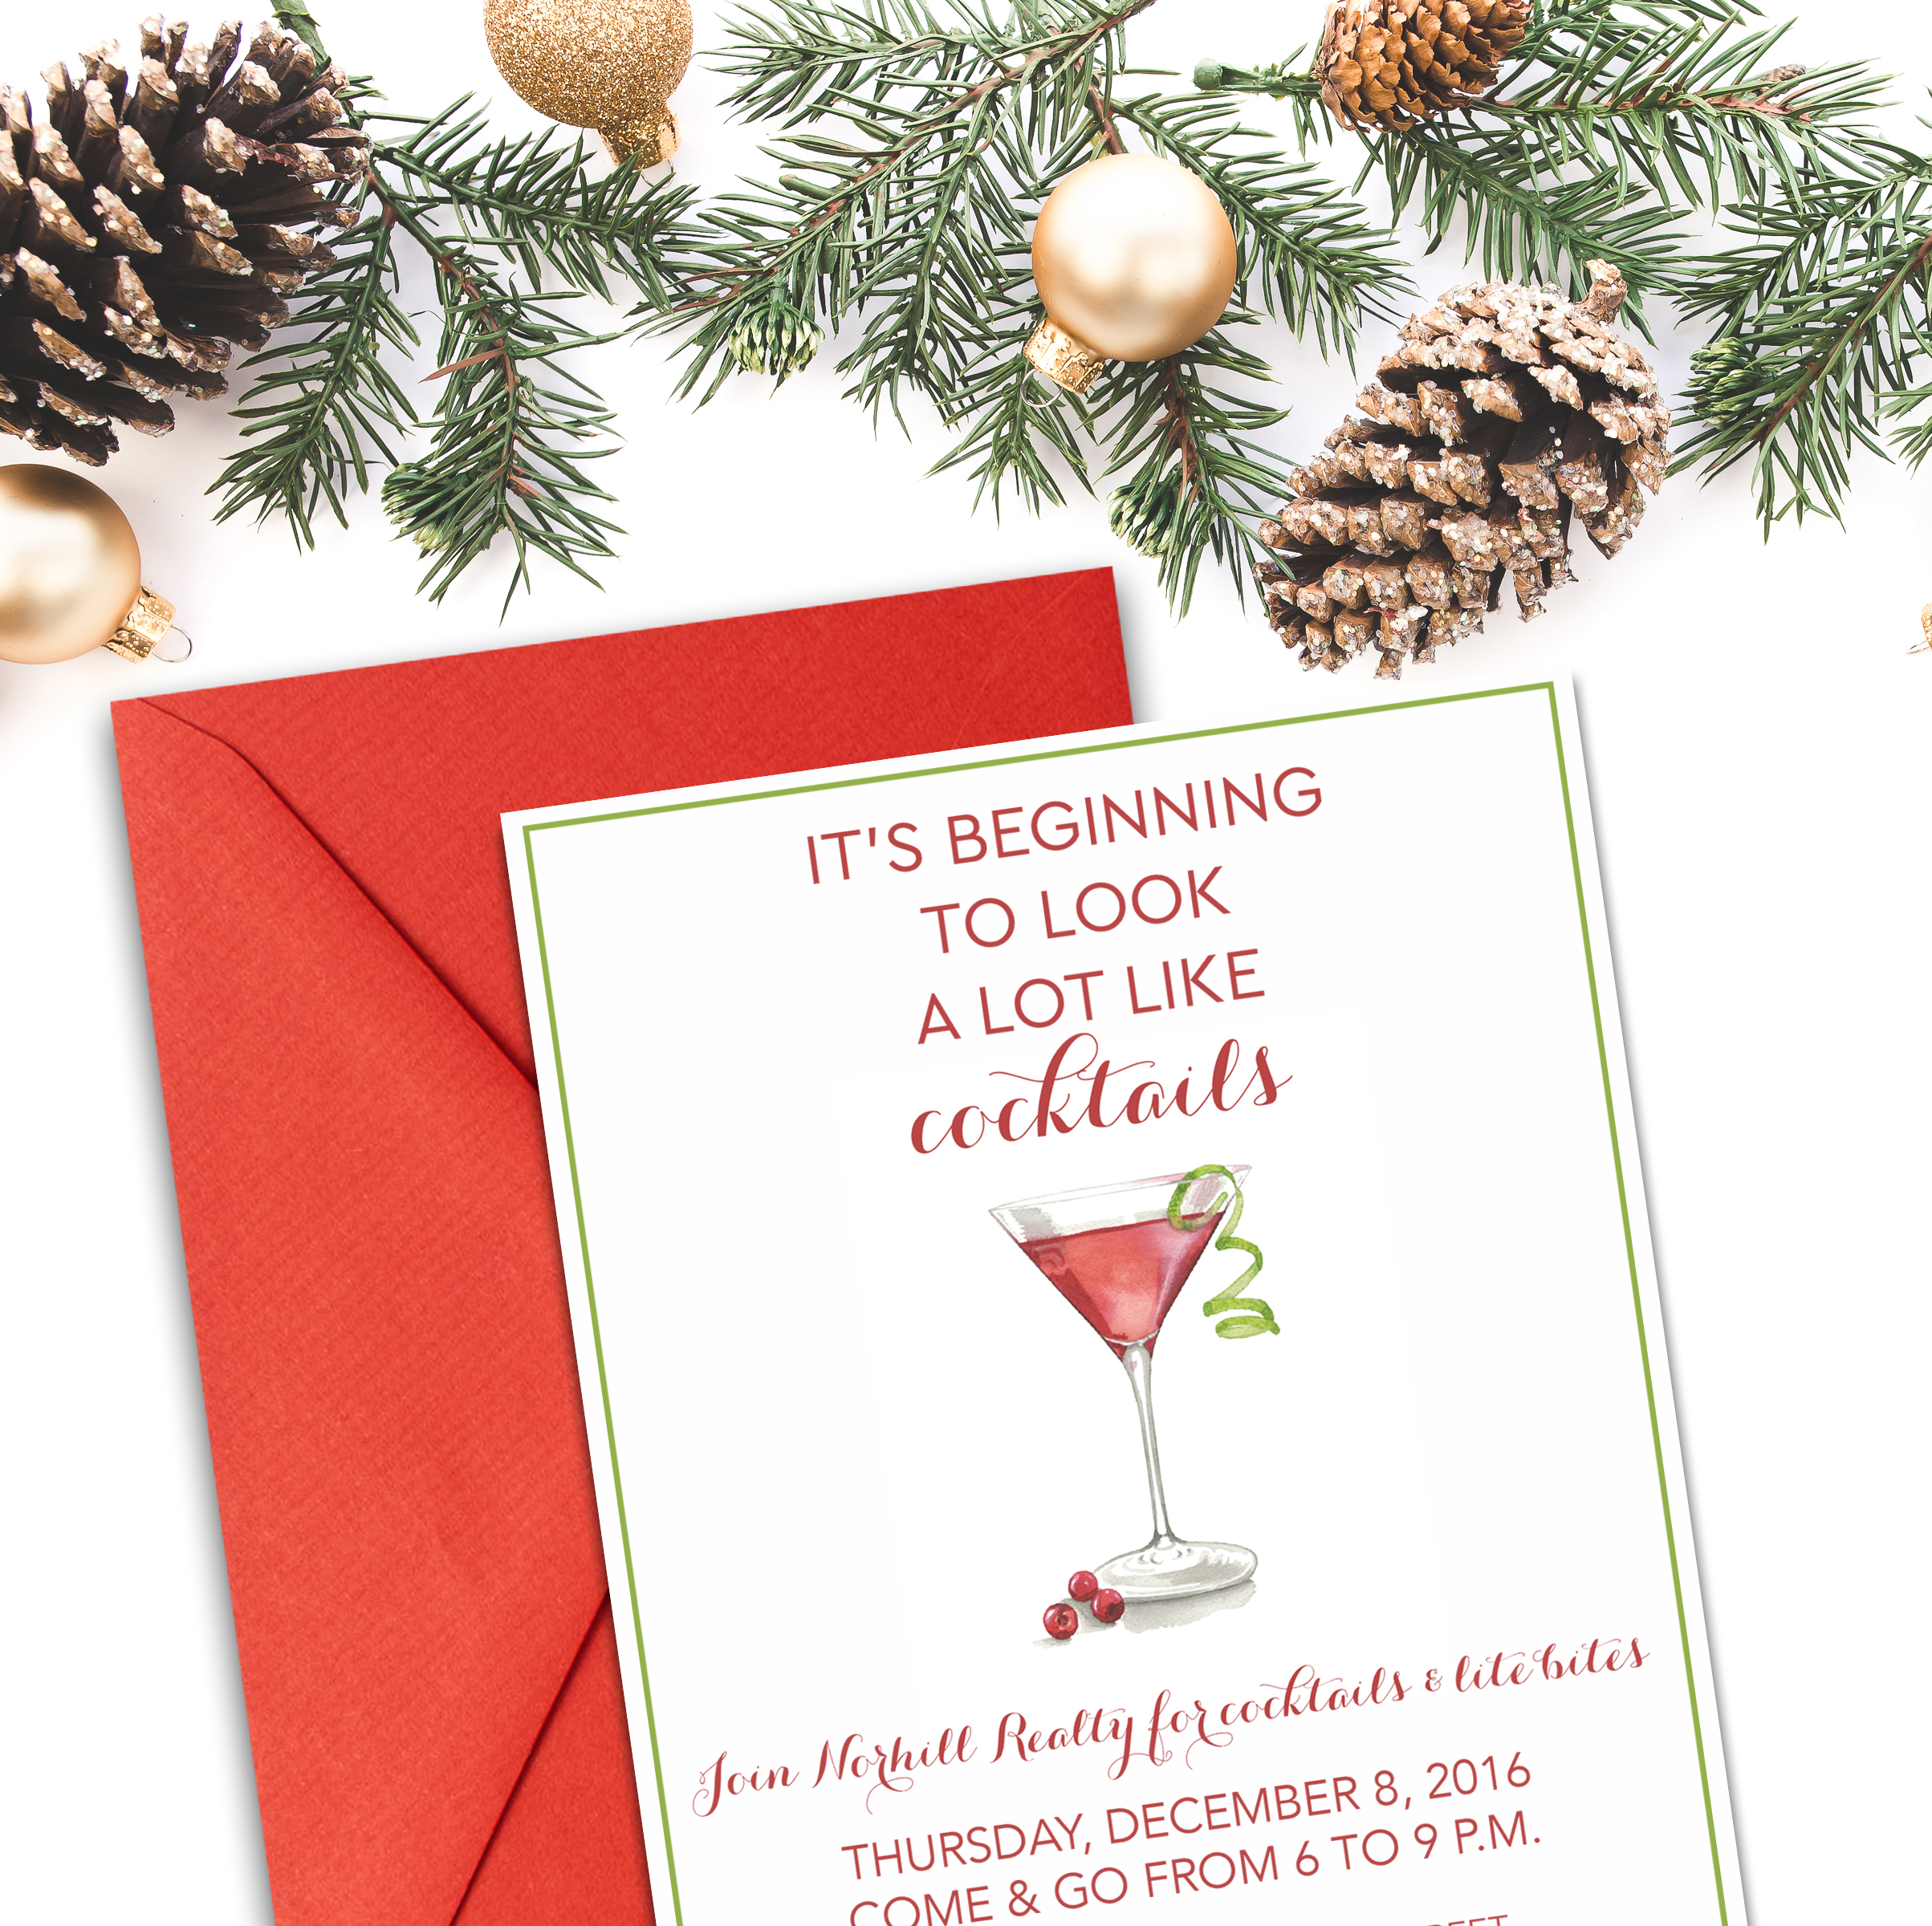 Norhill Realty is one of my favorite clients because I always get to design fun, cocktail themed holiday party invitations! This year's watercolor Christmas martini might be my favorite!